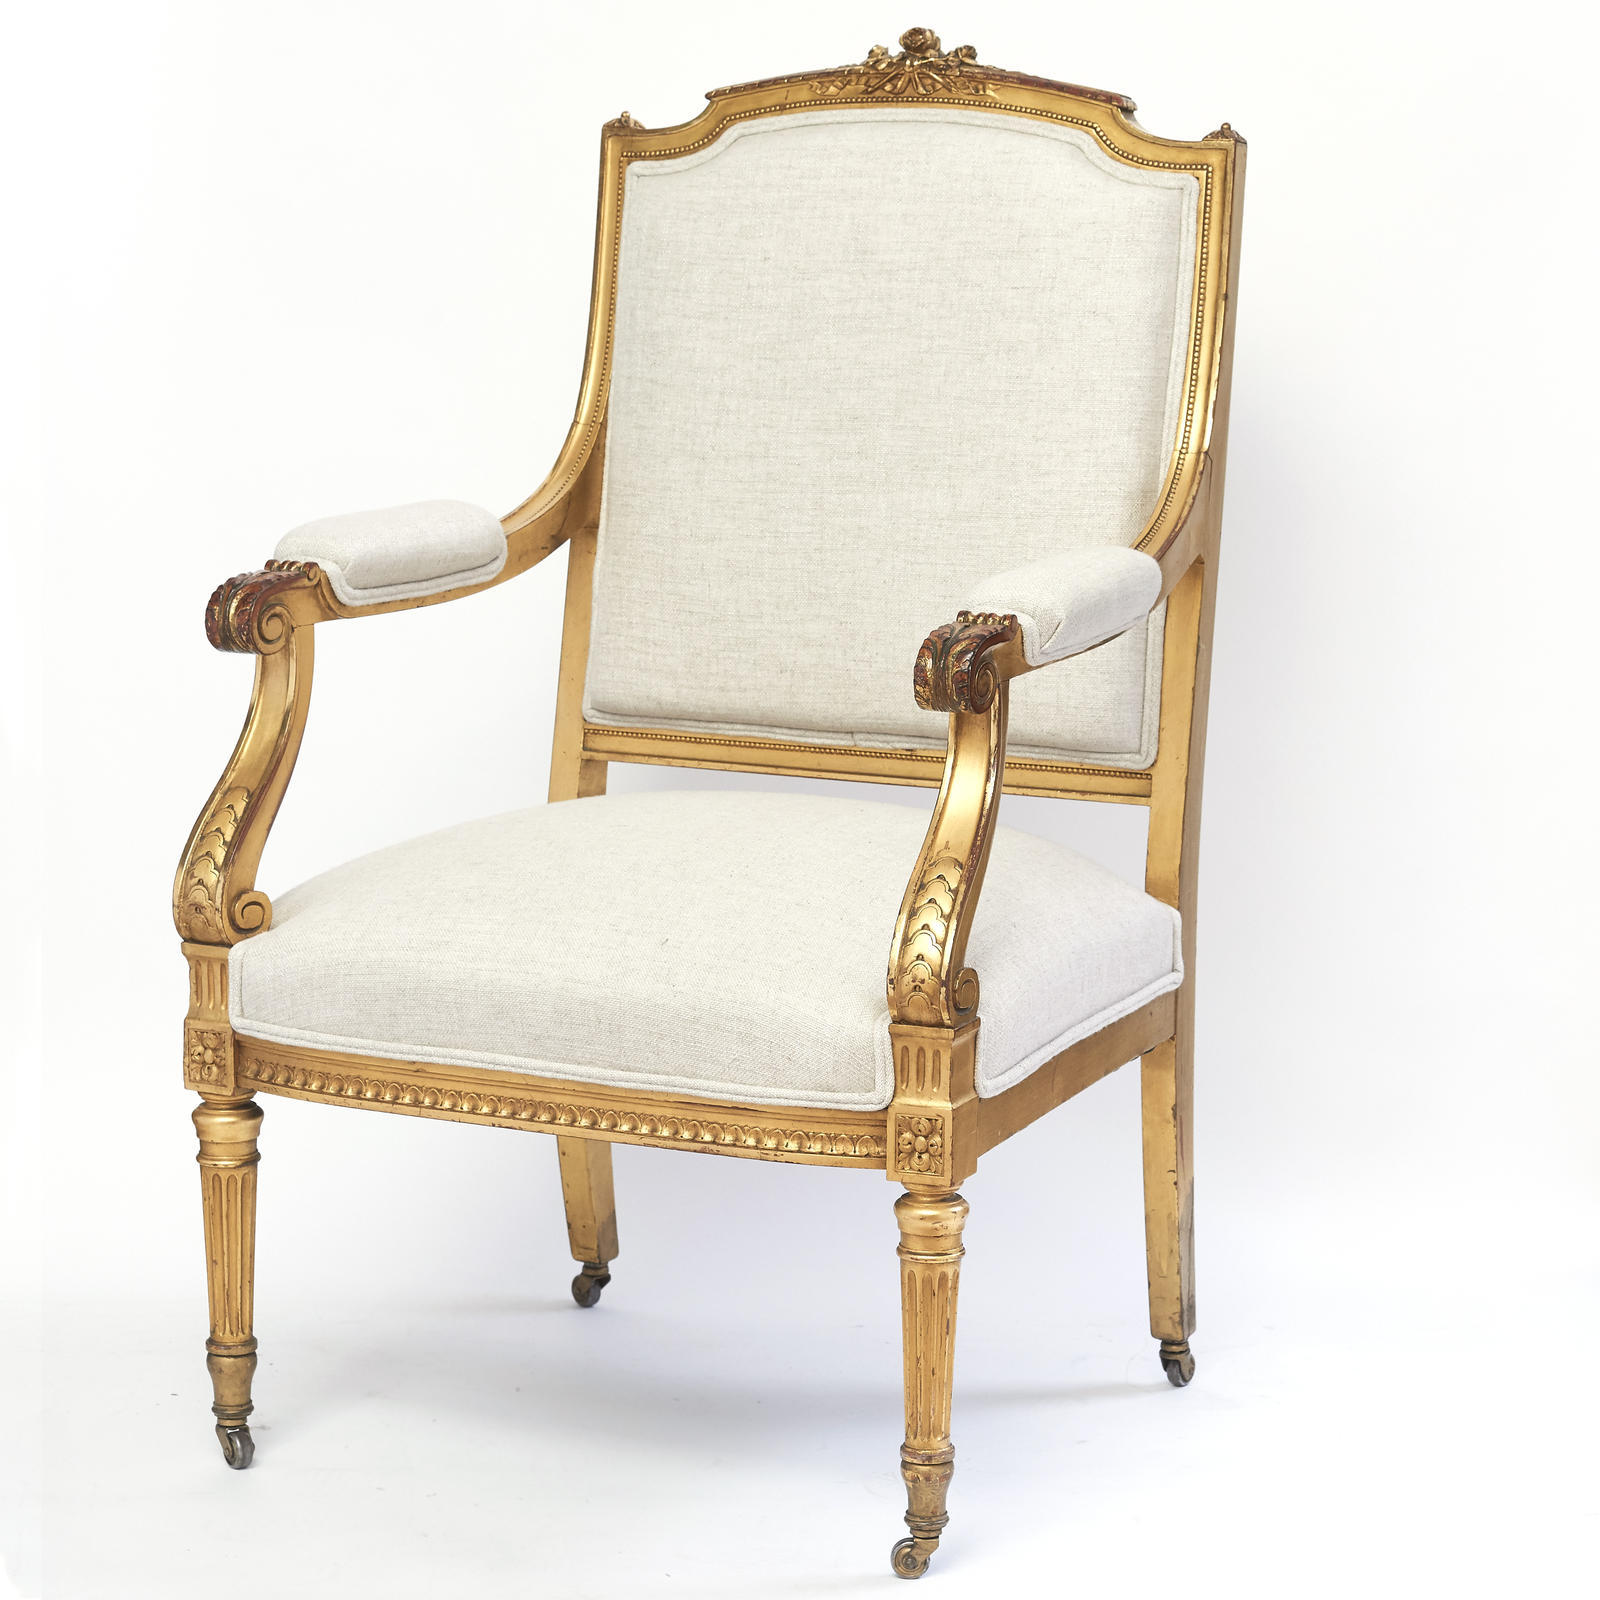 Fauteuils Tiffany Louis Xvi Style Gilt Wood Fauteuil Catalogue View Greenwald